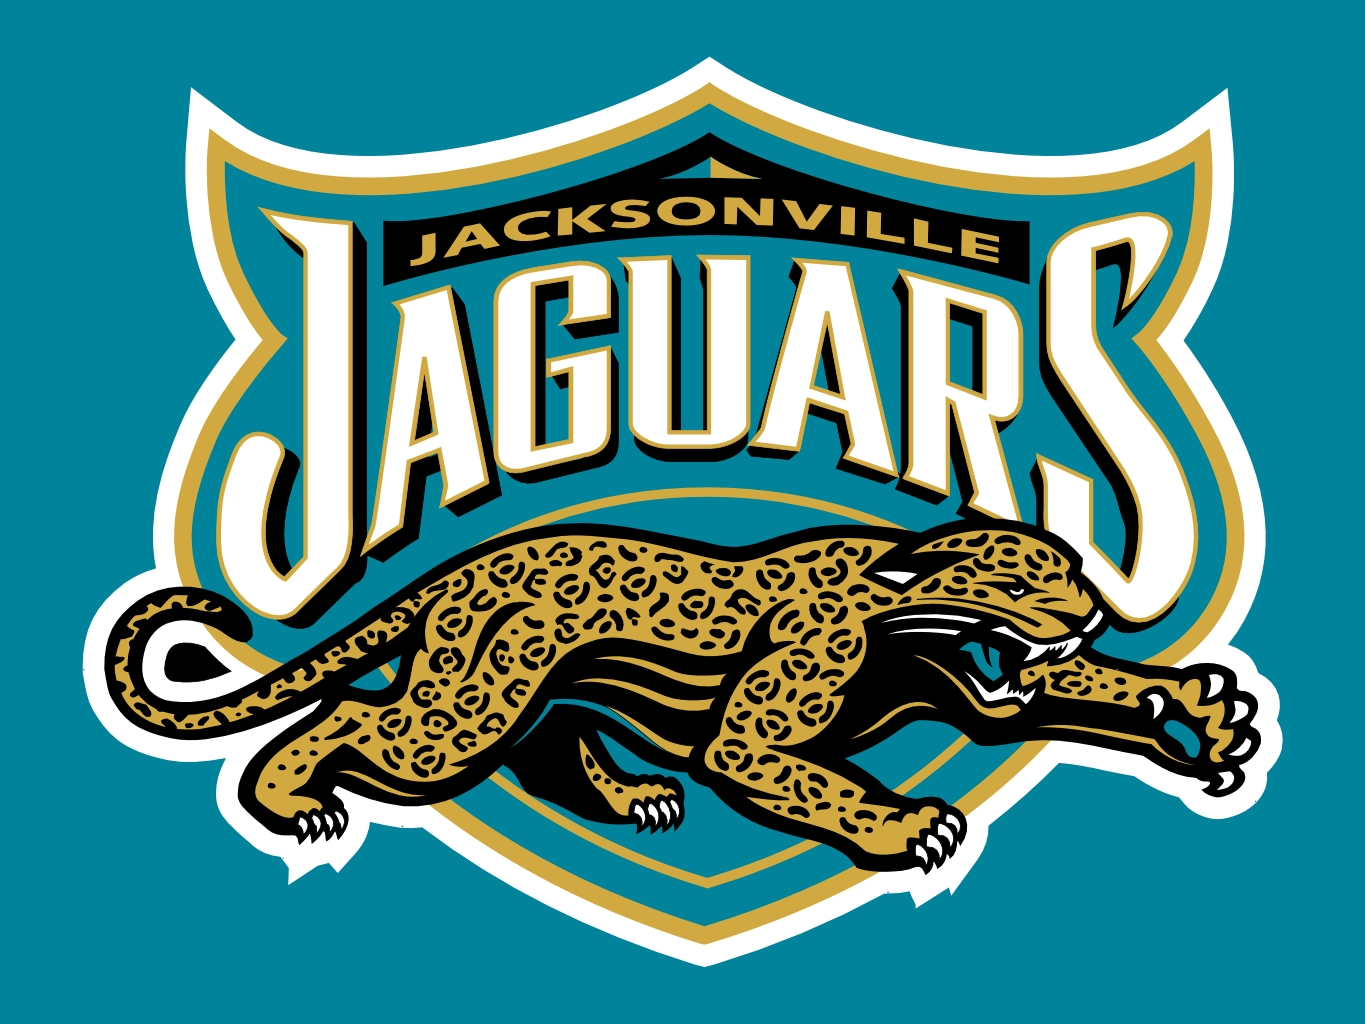 jacksonville jaguars new logo wallpaper - photo #18